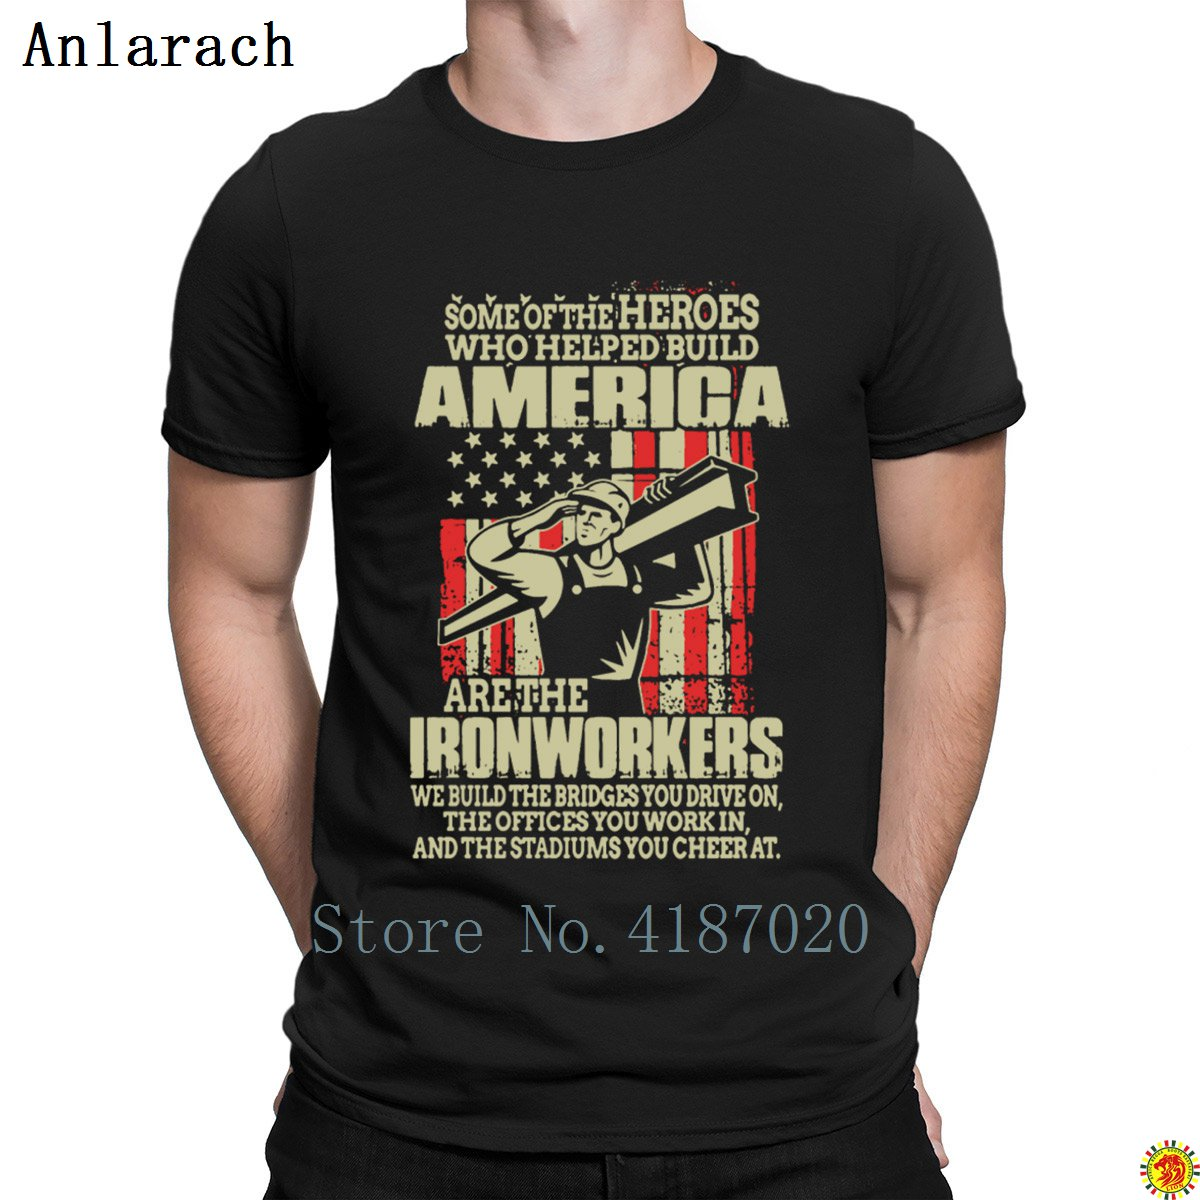 America Ironworker T-Shirts Hip Hop Hilarious Creative Spring Autumn T Shirt For Men Best Gift O Neck Anlarach Normal image